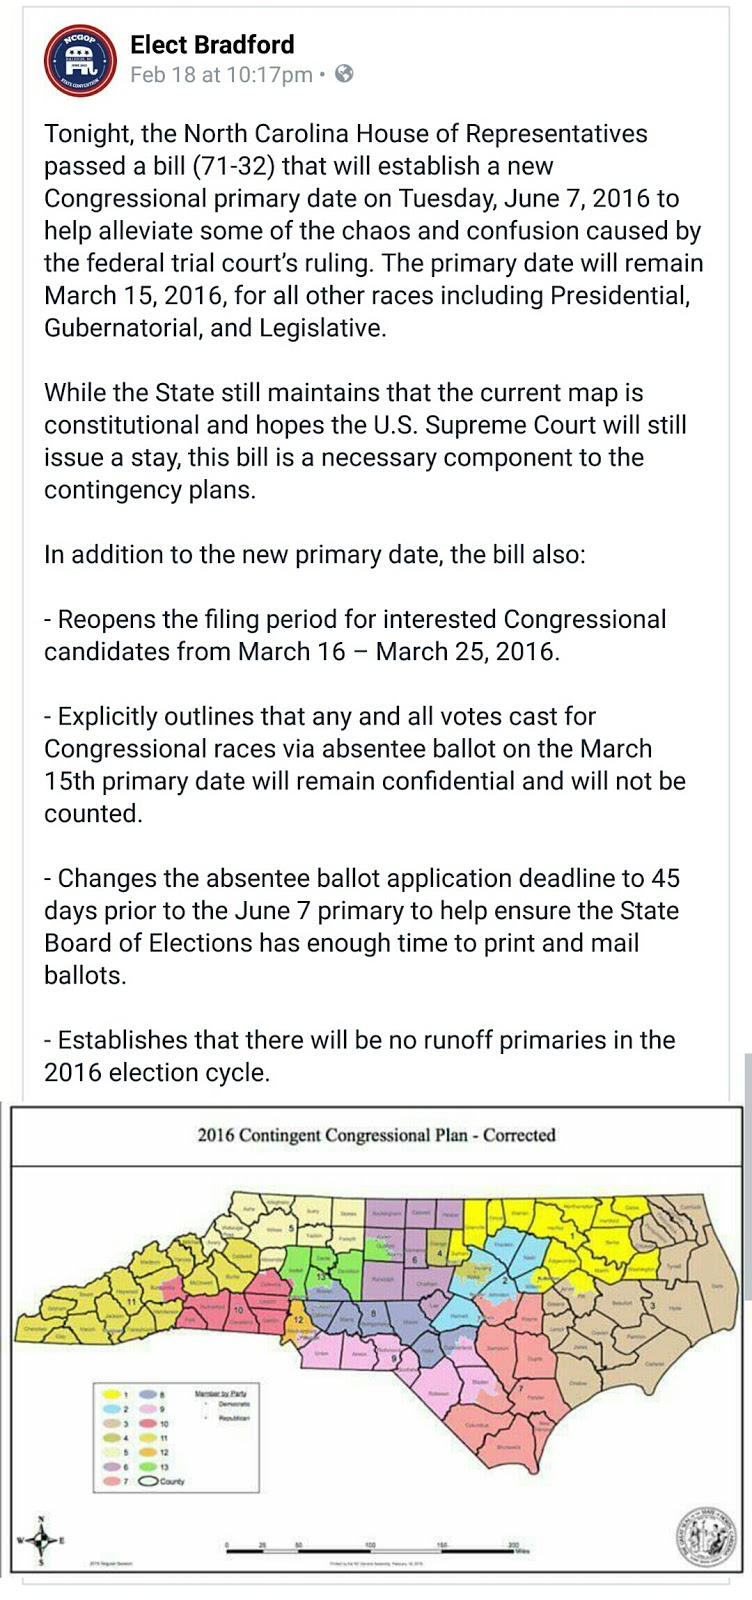 so over the next few weeks expect a lot of jockeying around who will file for congress when the new filing period opens the day after the rest of the